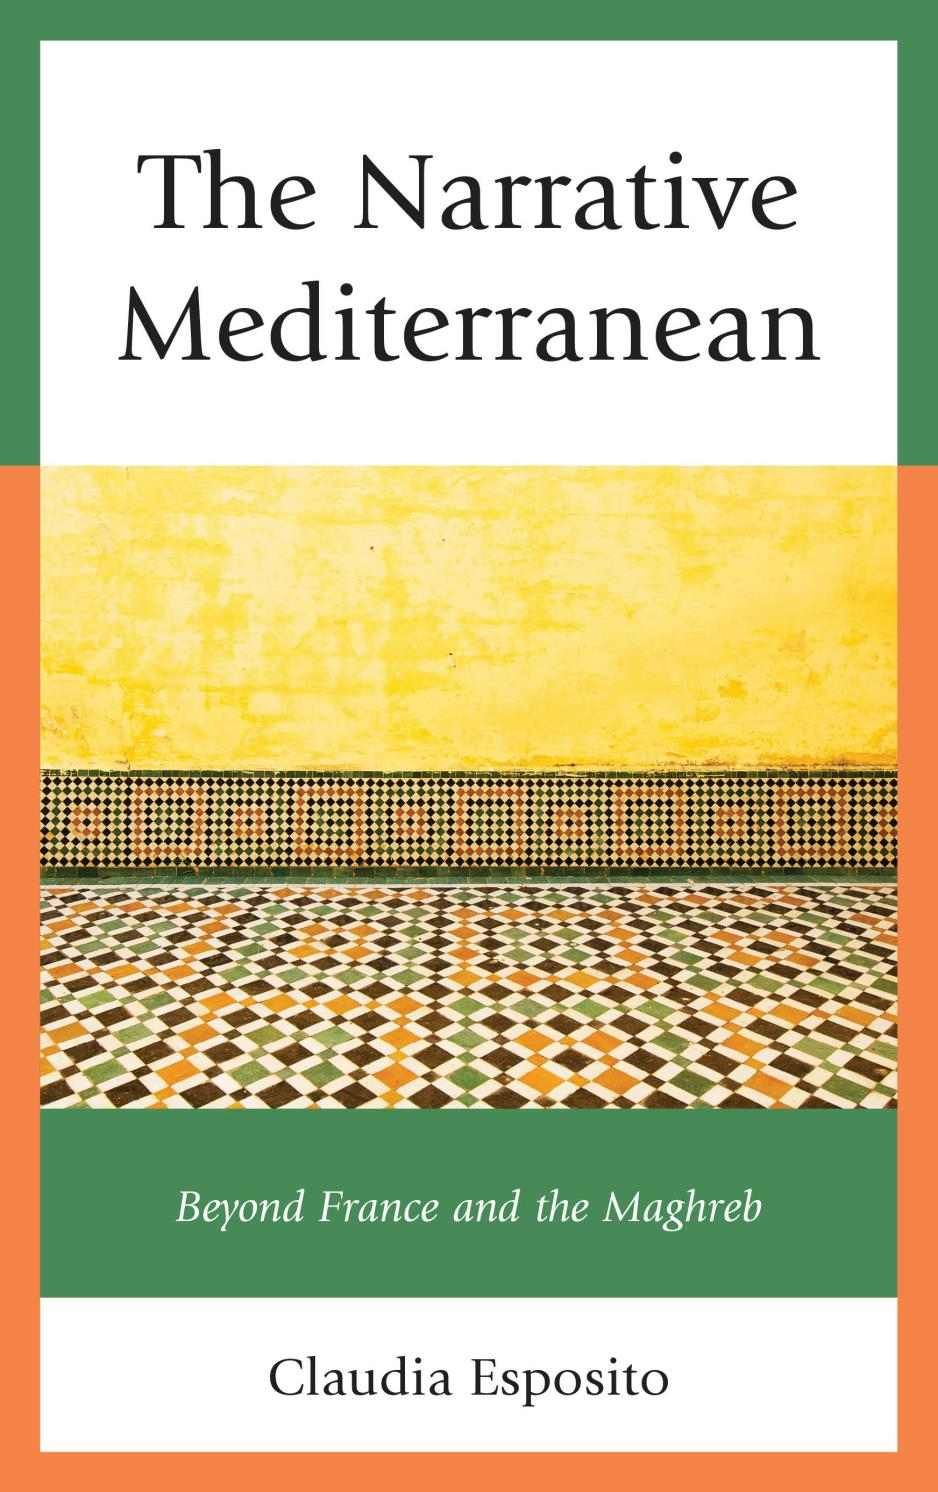 The Narrative Mediterranean Beyond France and the Maghreb